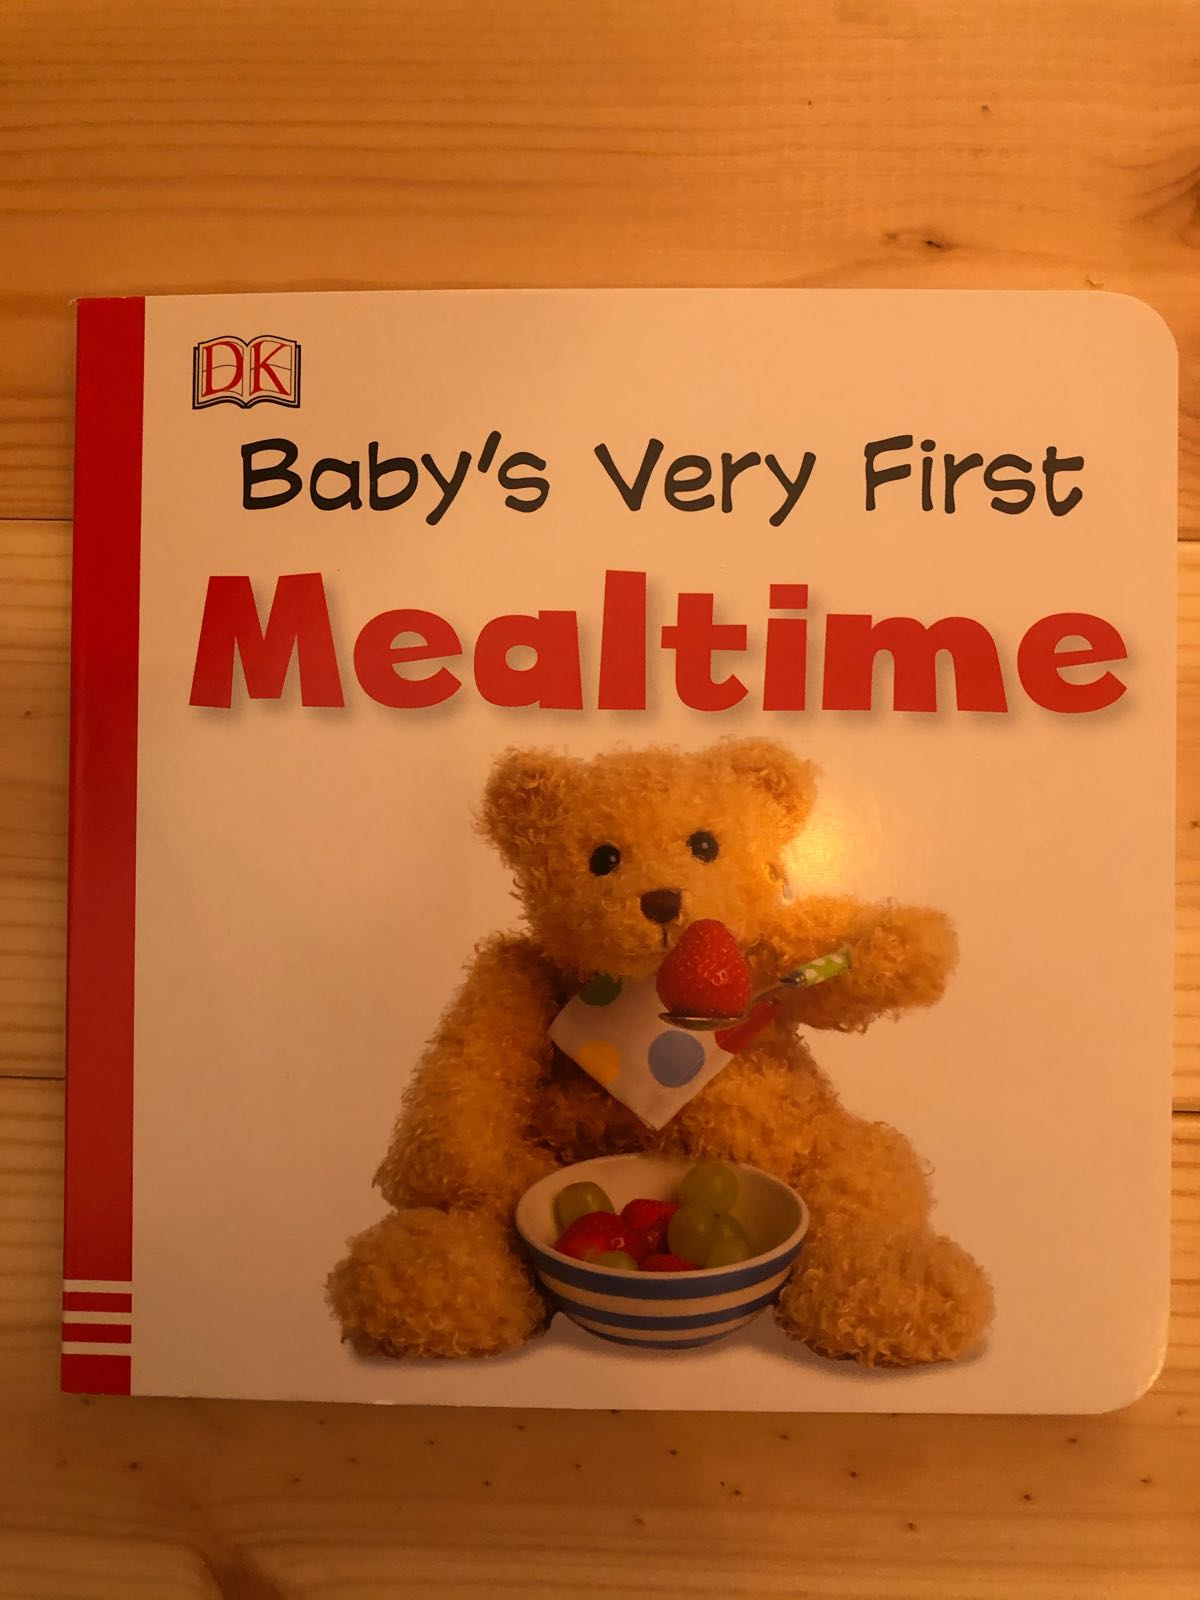 Baby's very first mealtime